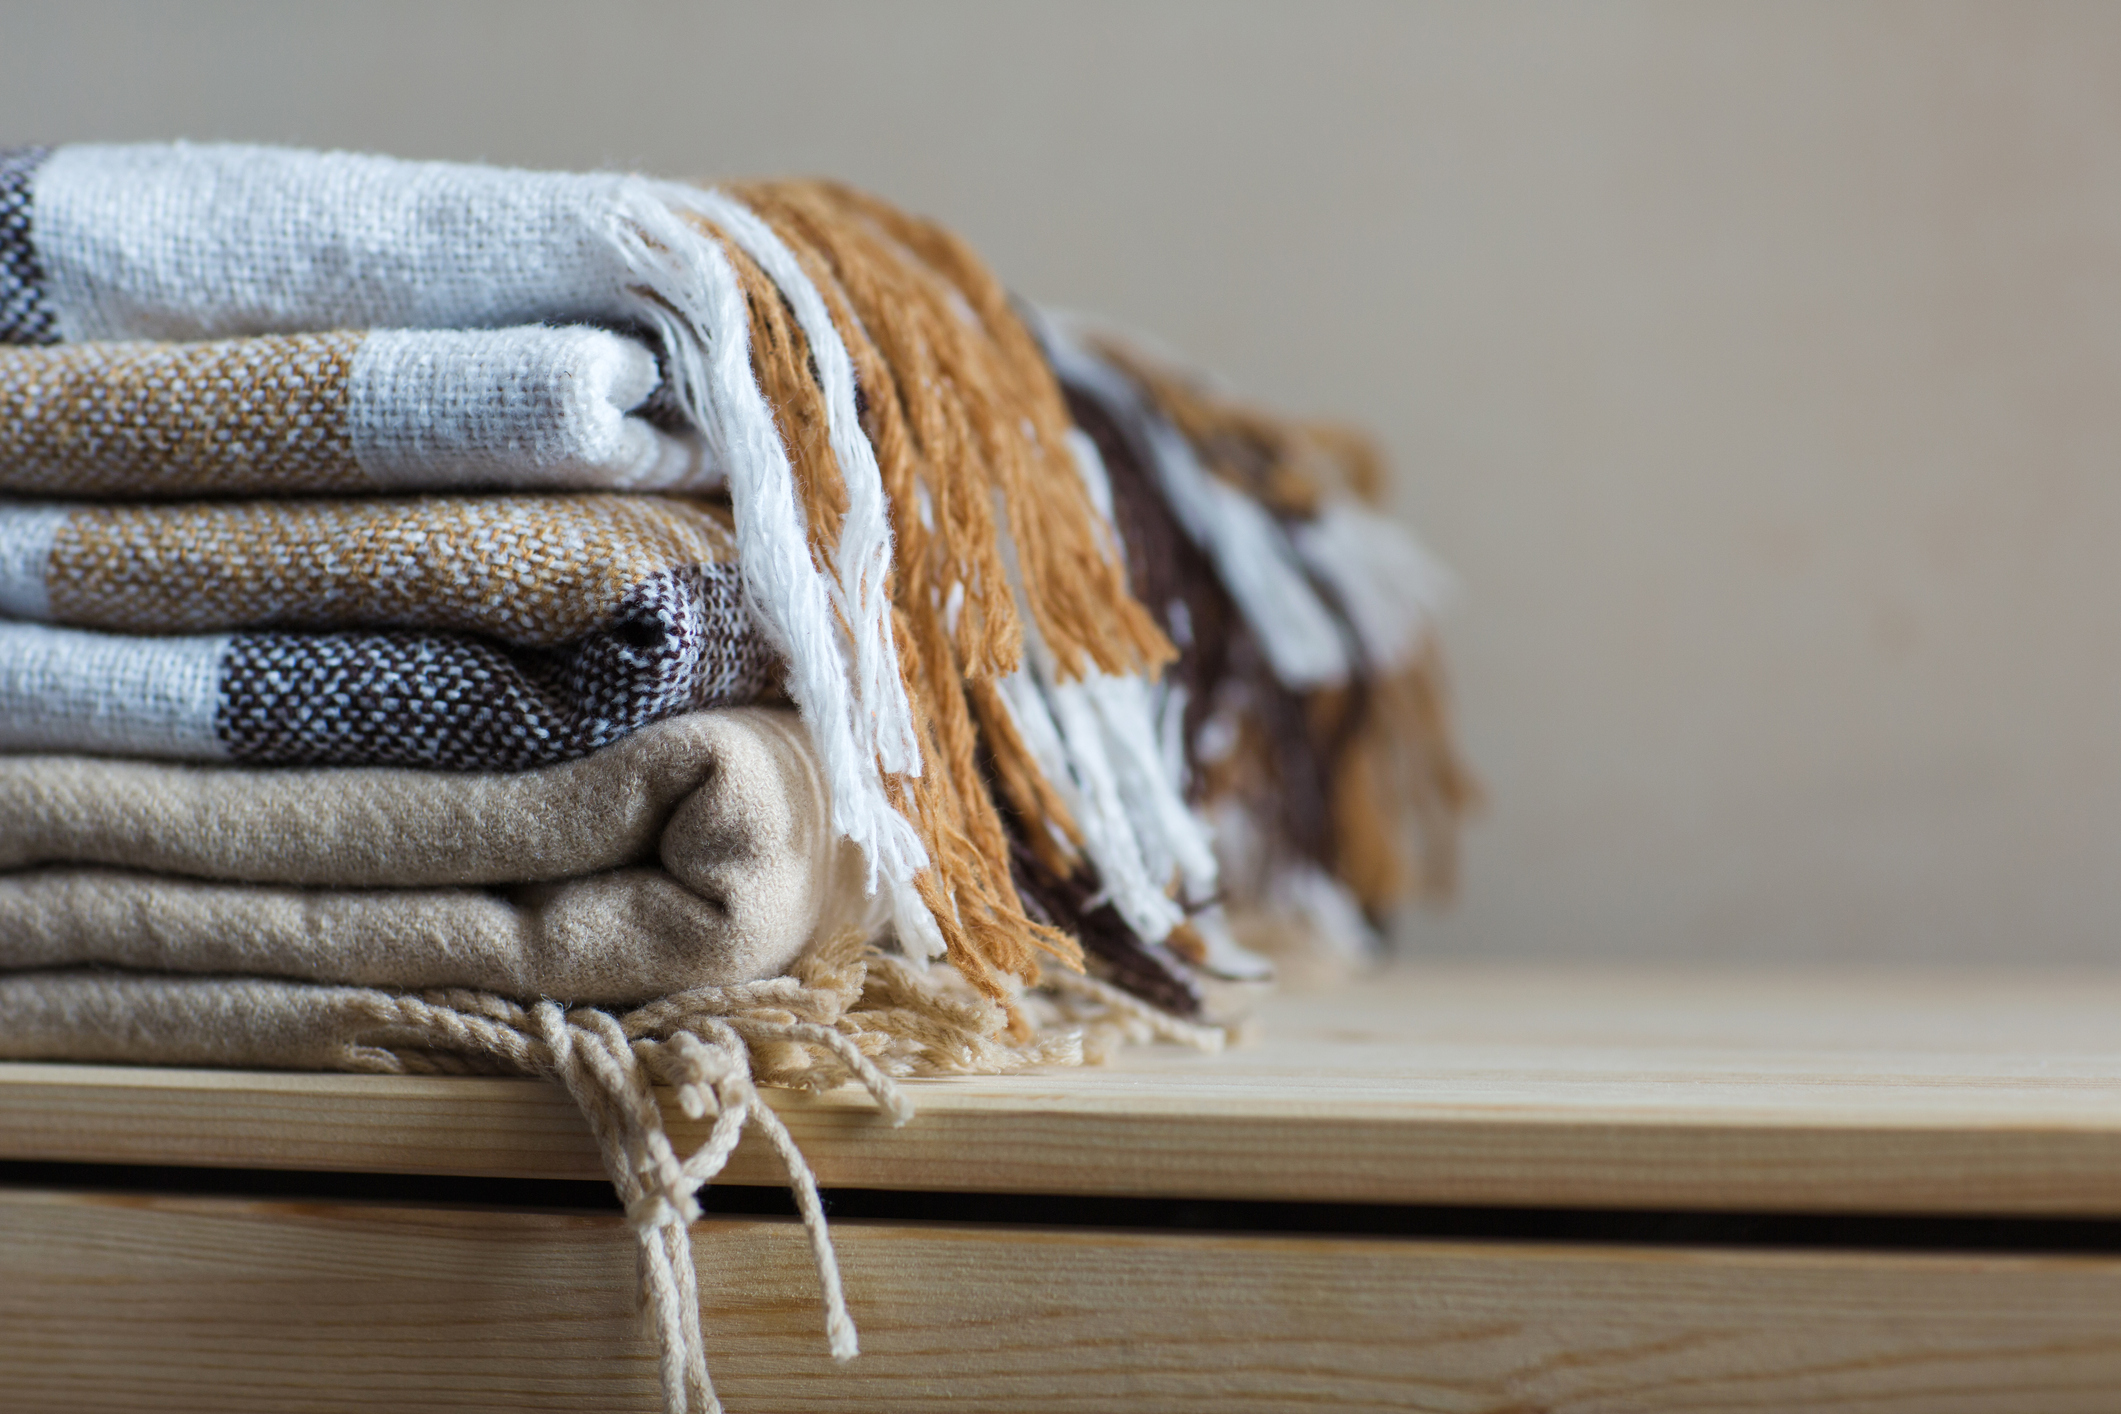 iStock photo of stack of blankets